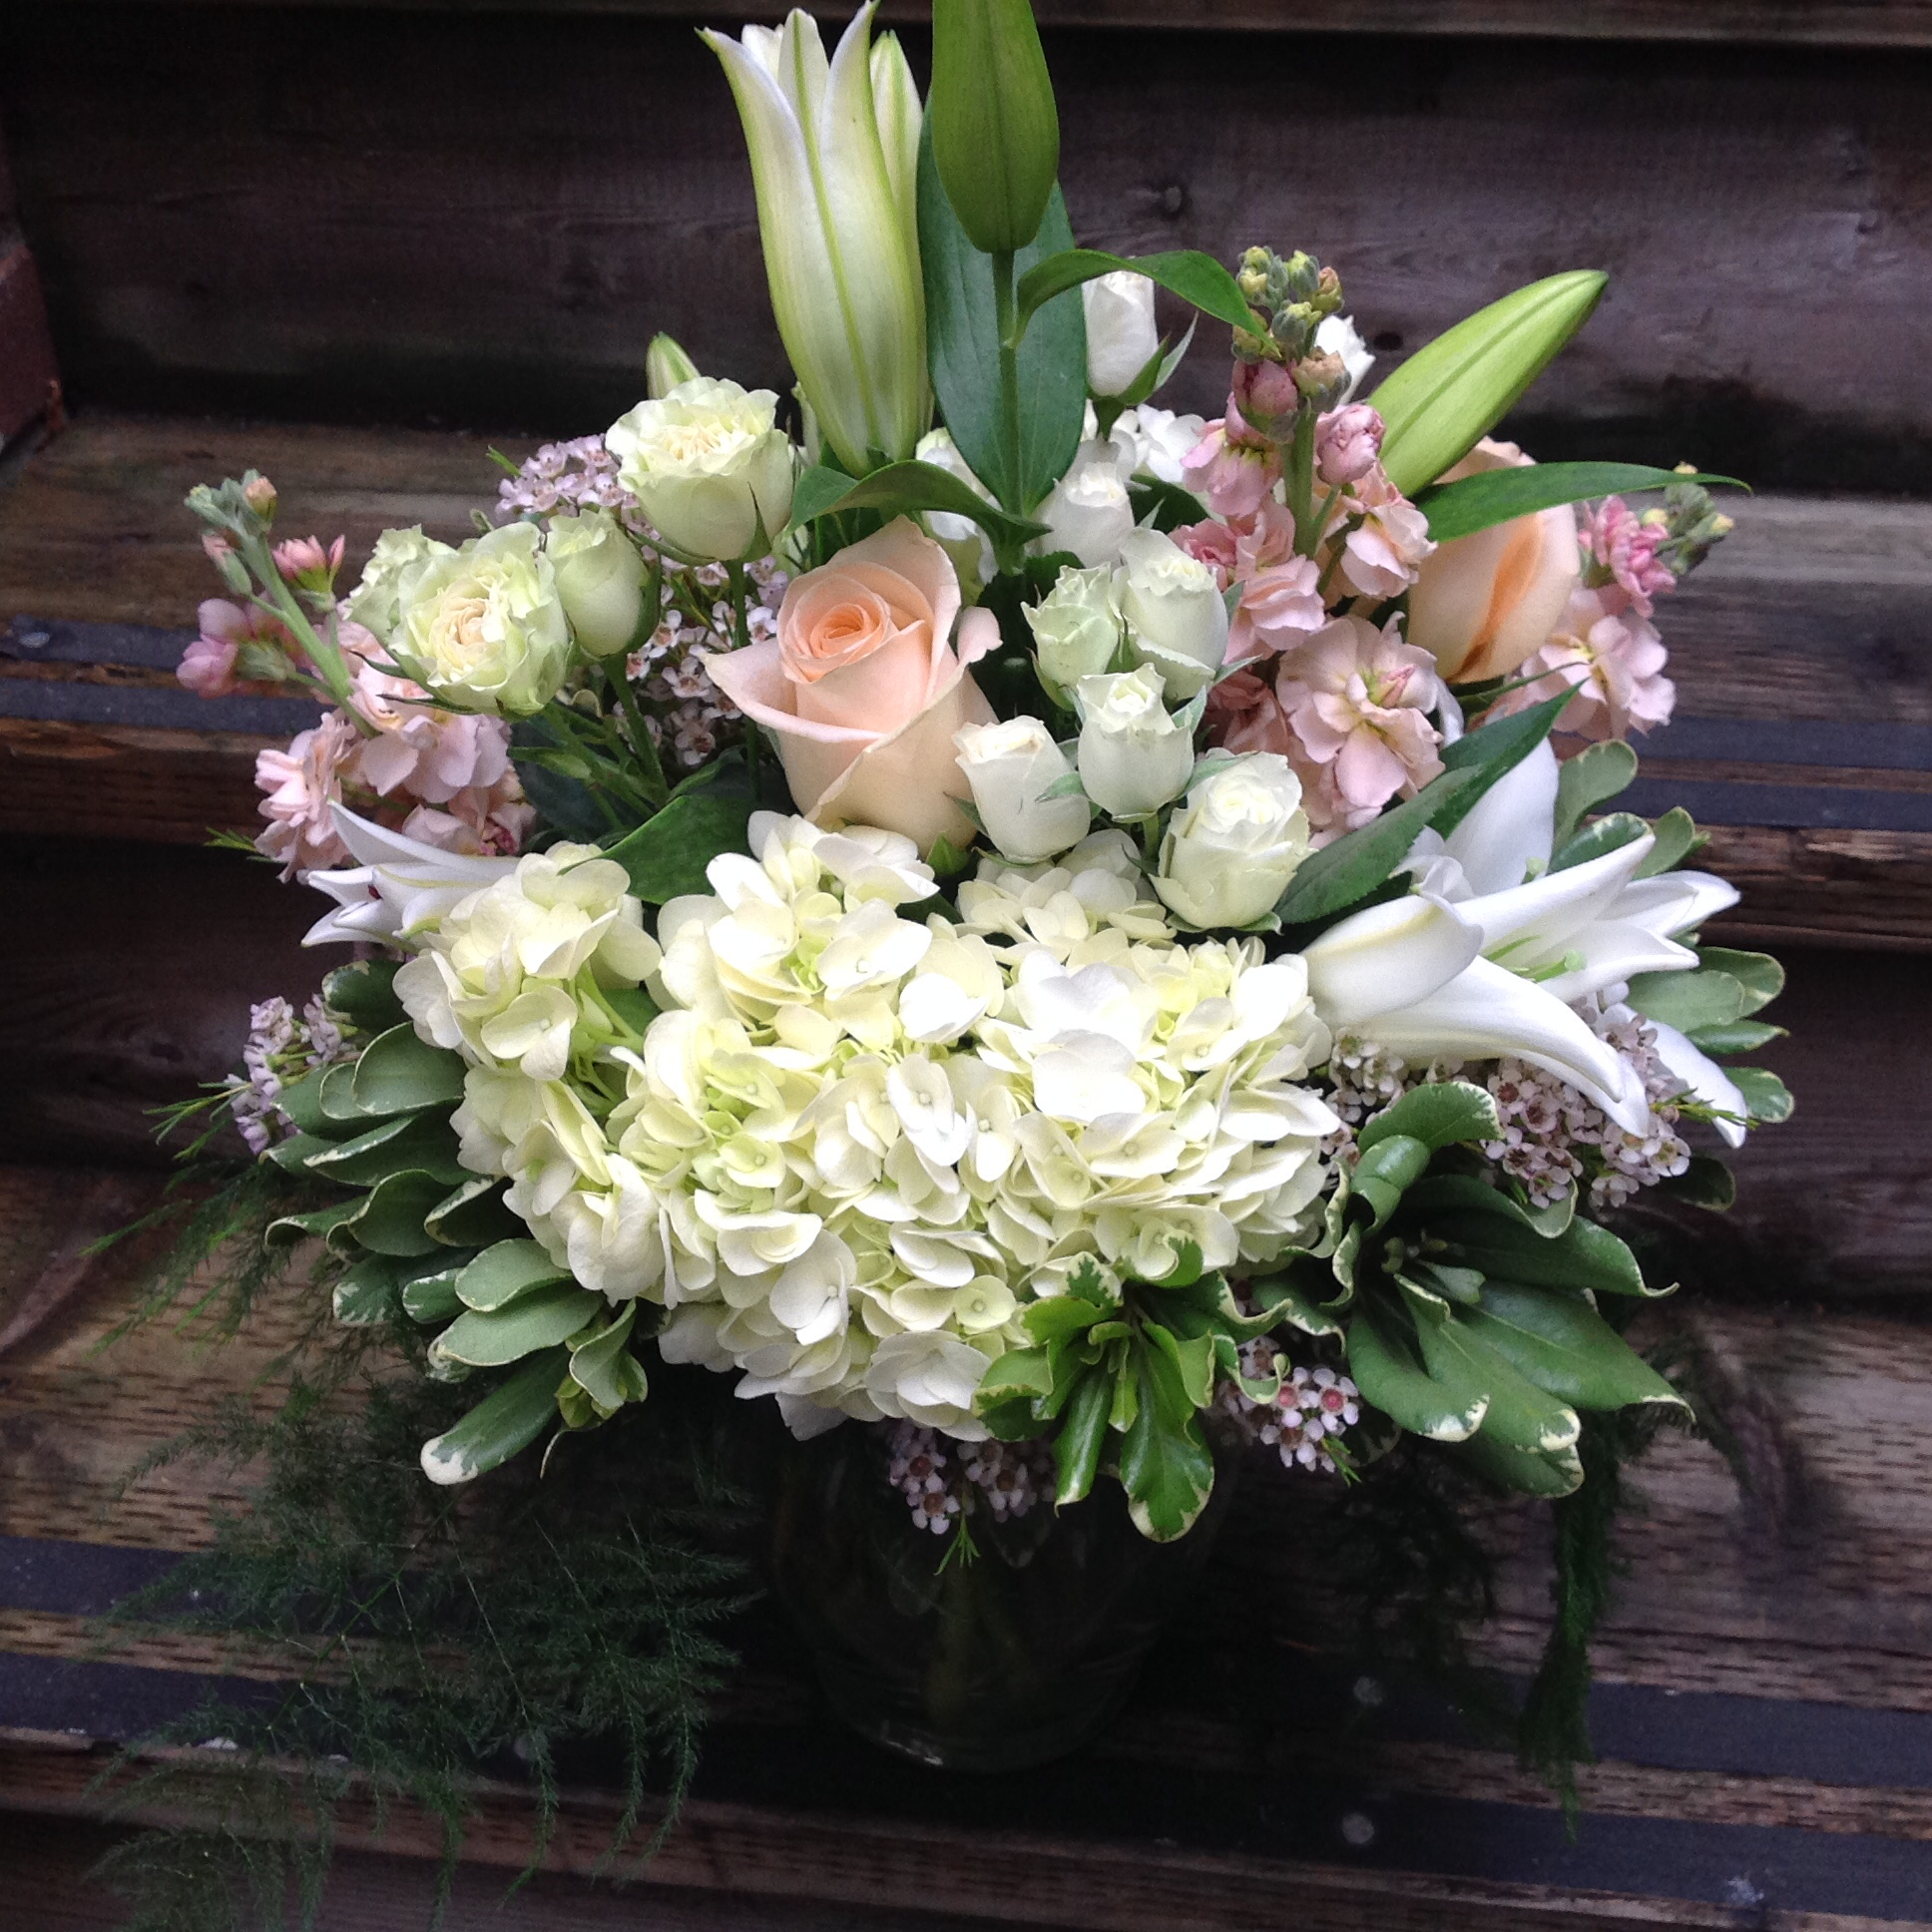 38. lush rounded bouquet with soft lavender and cream accent